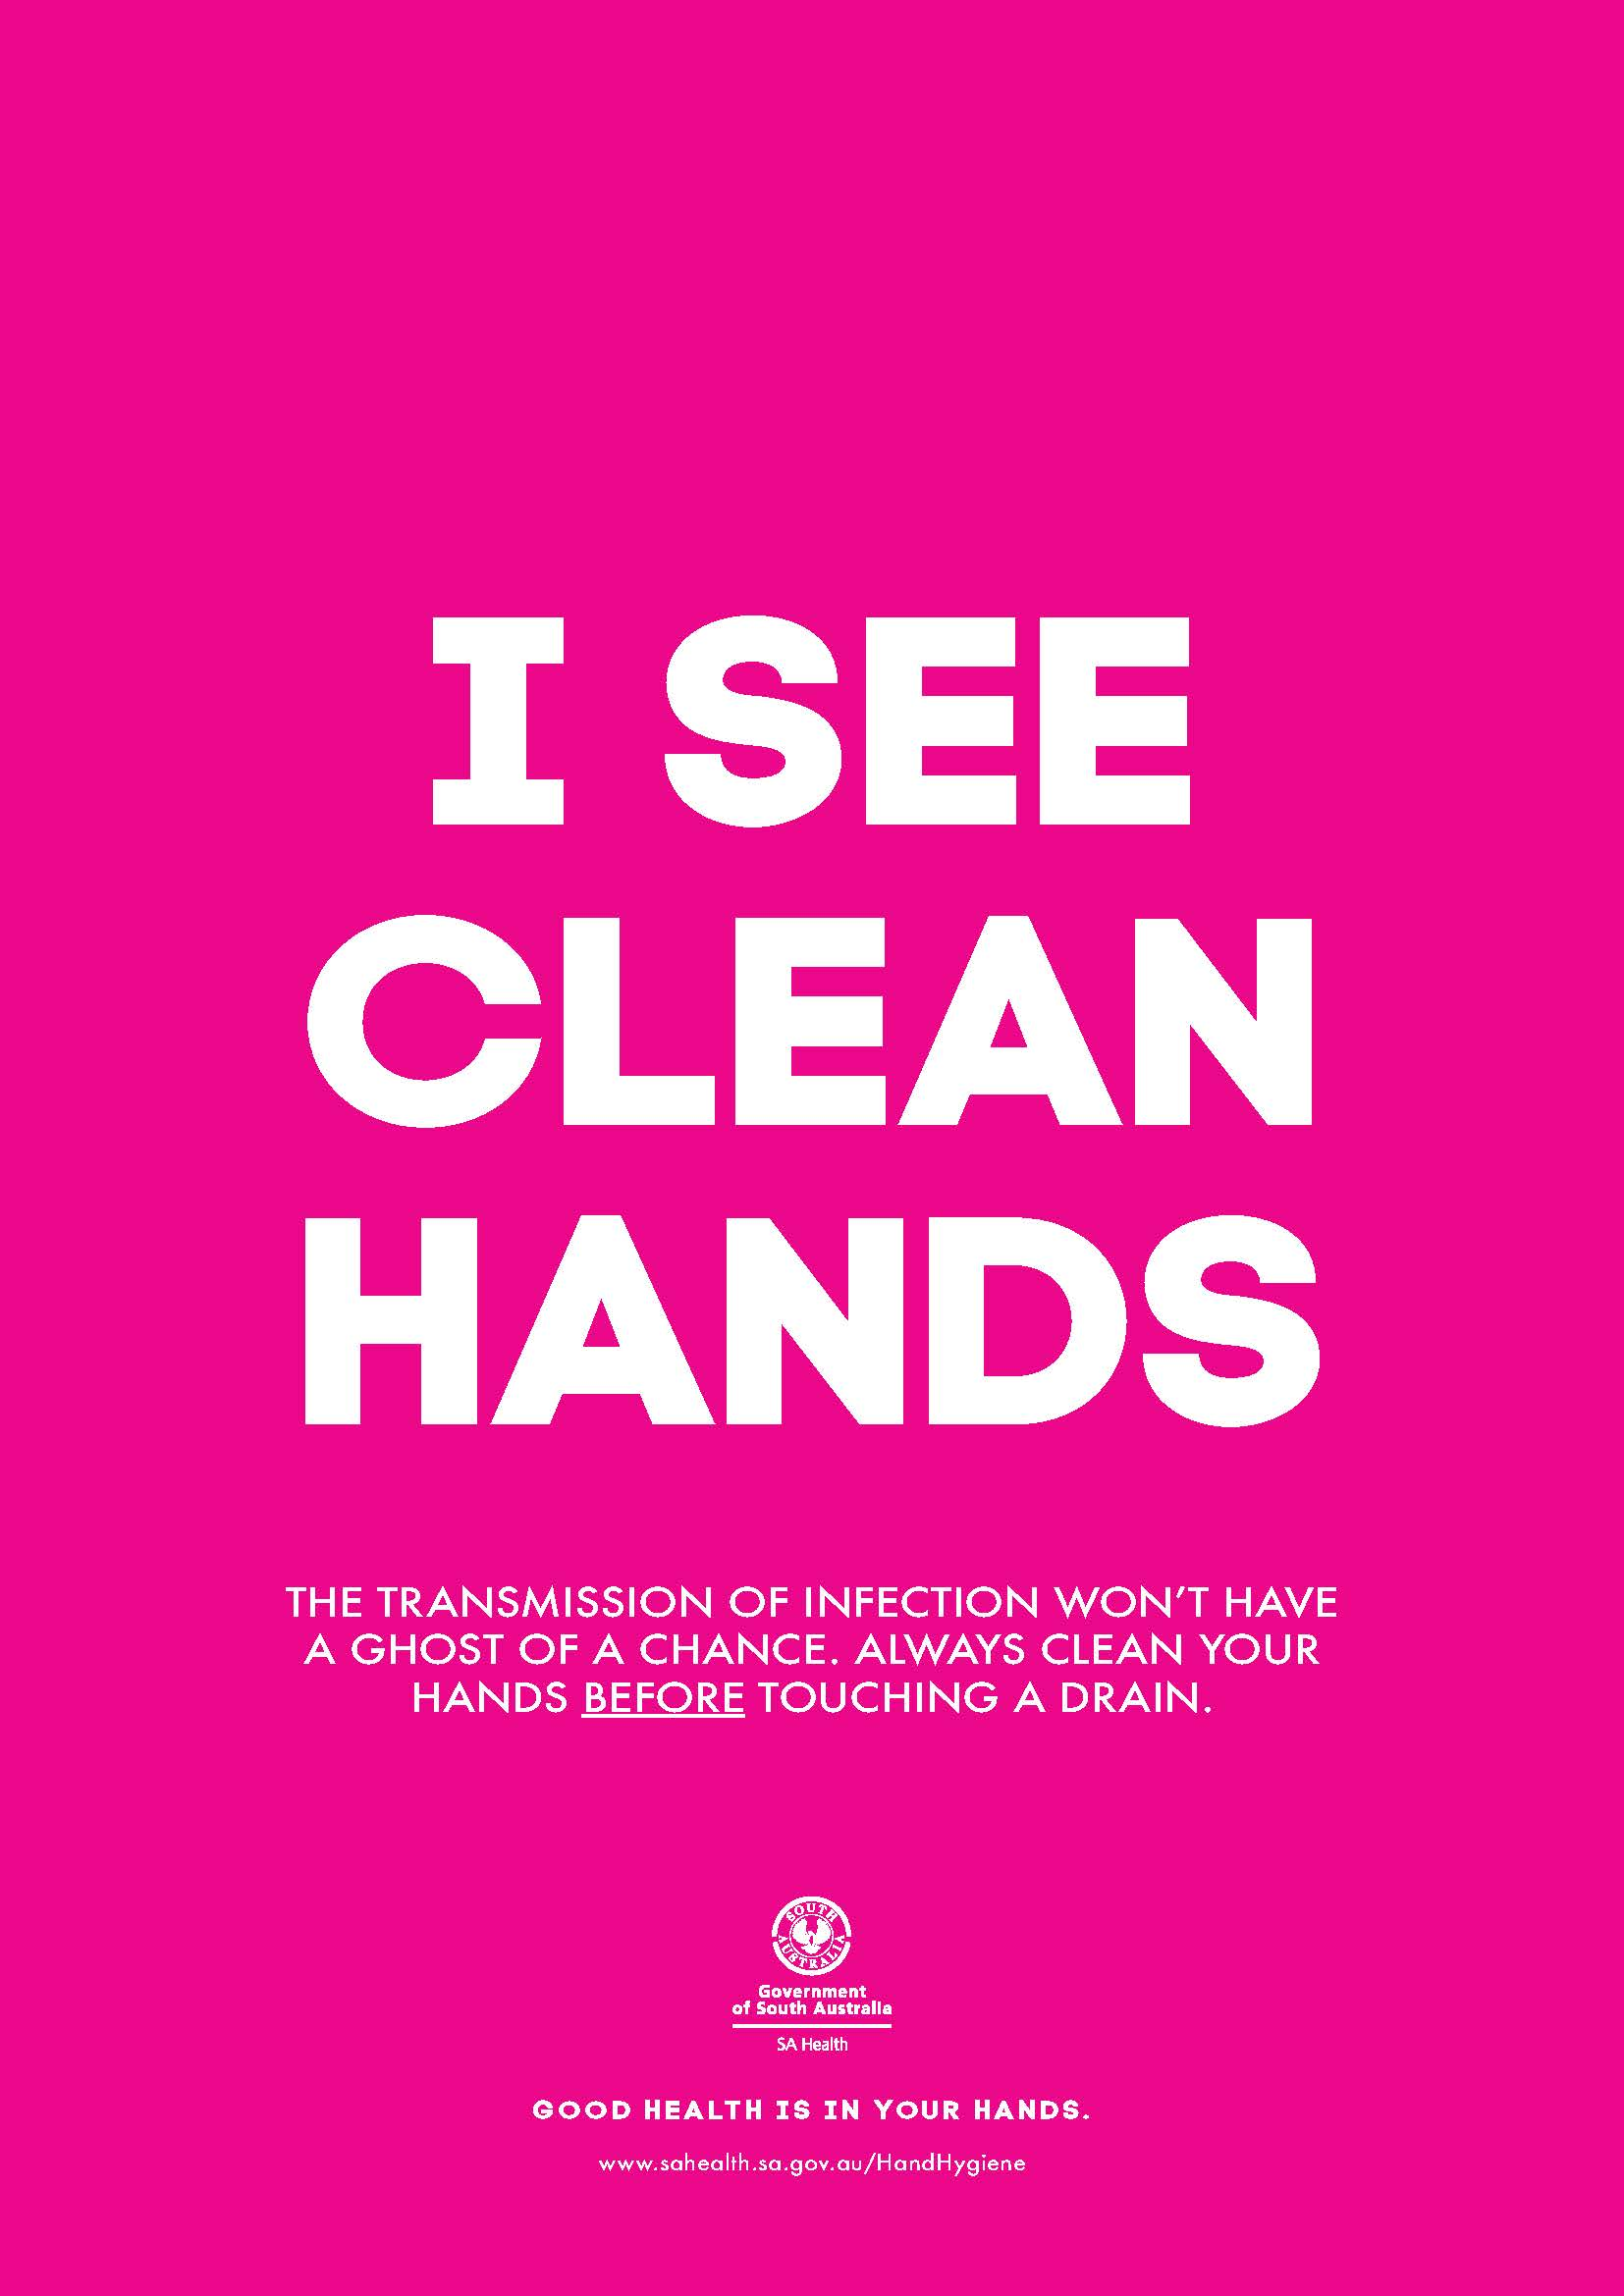 Hand hygiene poster - I see clean hands